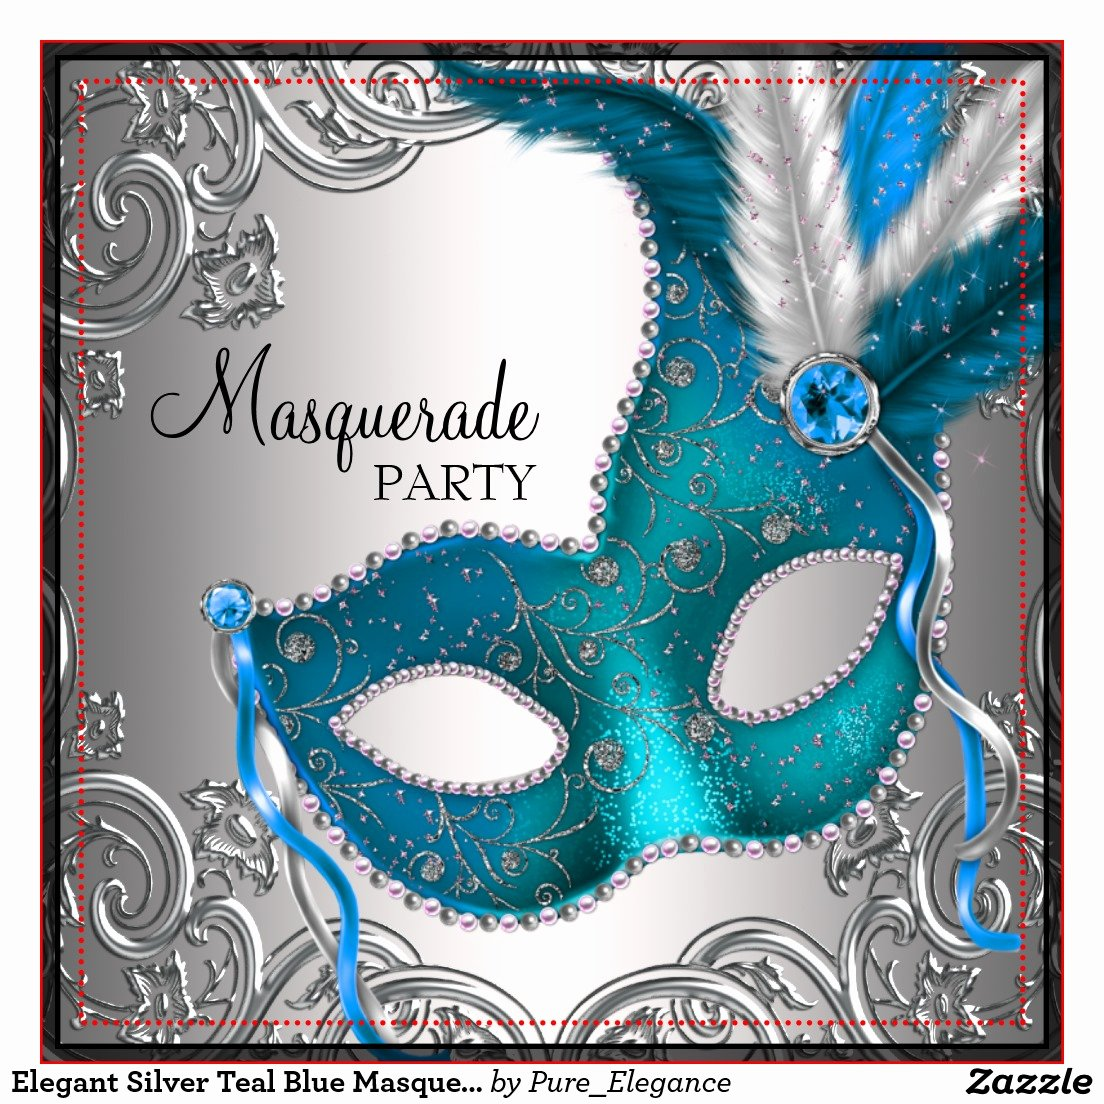 Party Invitations 10 Elegant Masquerade Party Invitations